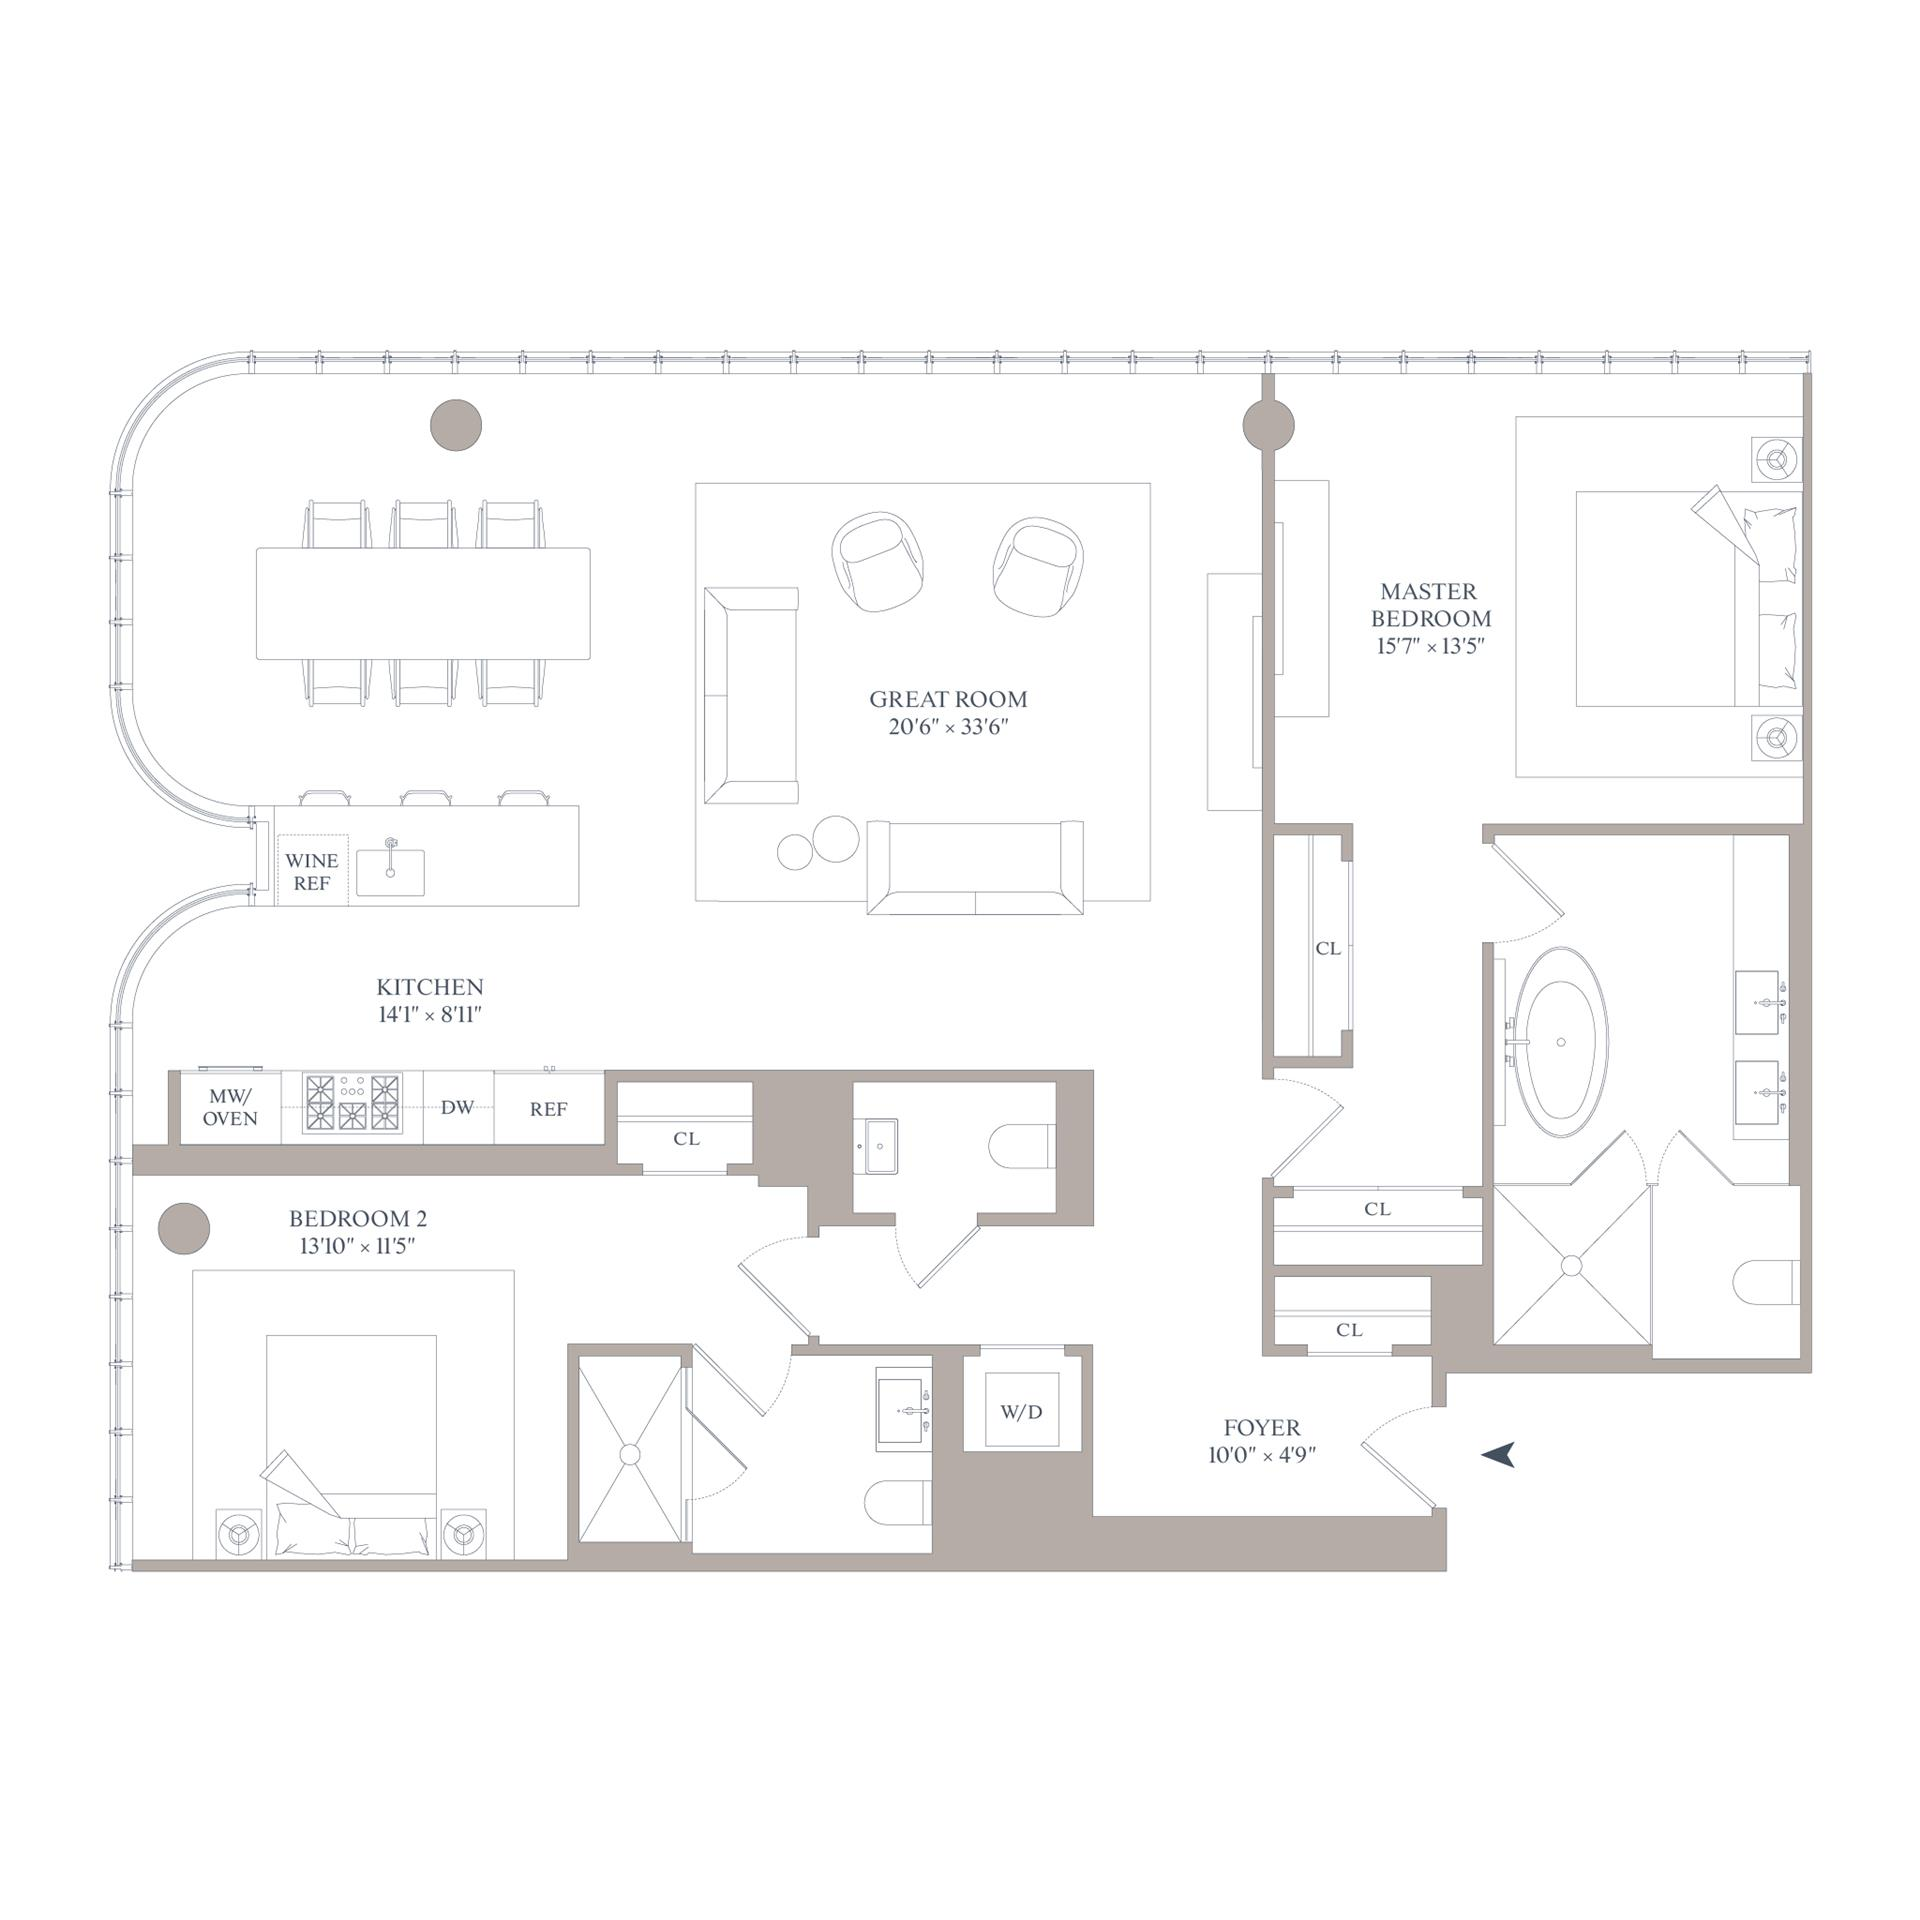 Floor plan of 565 Broome St, N10C - SoHo - Nolita, New York